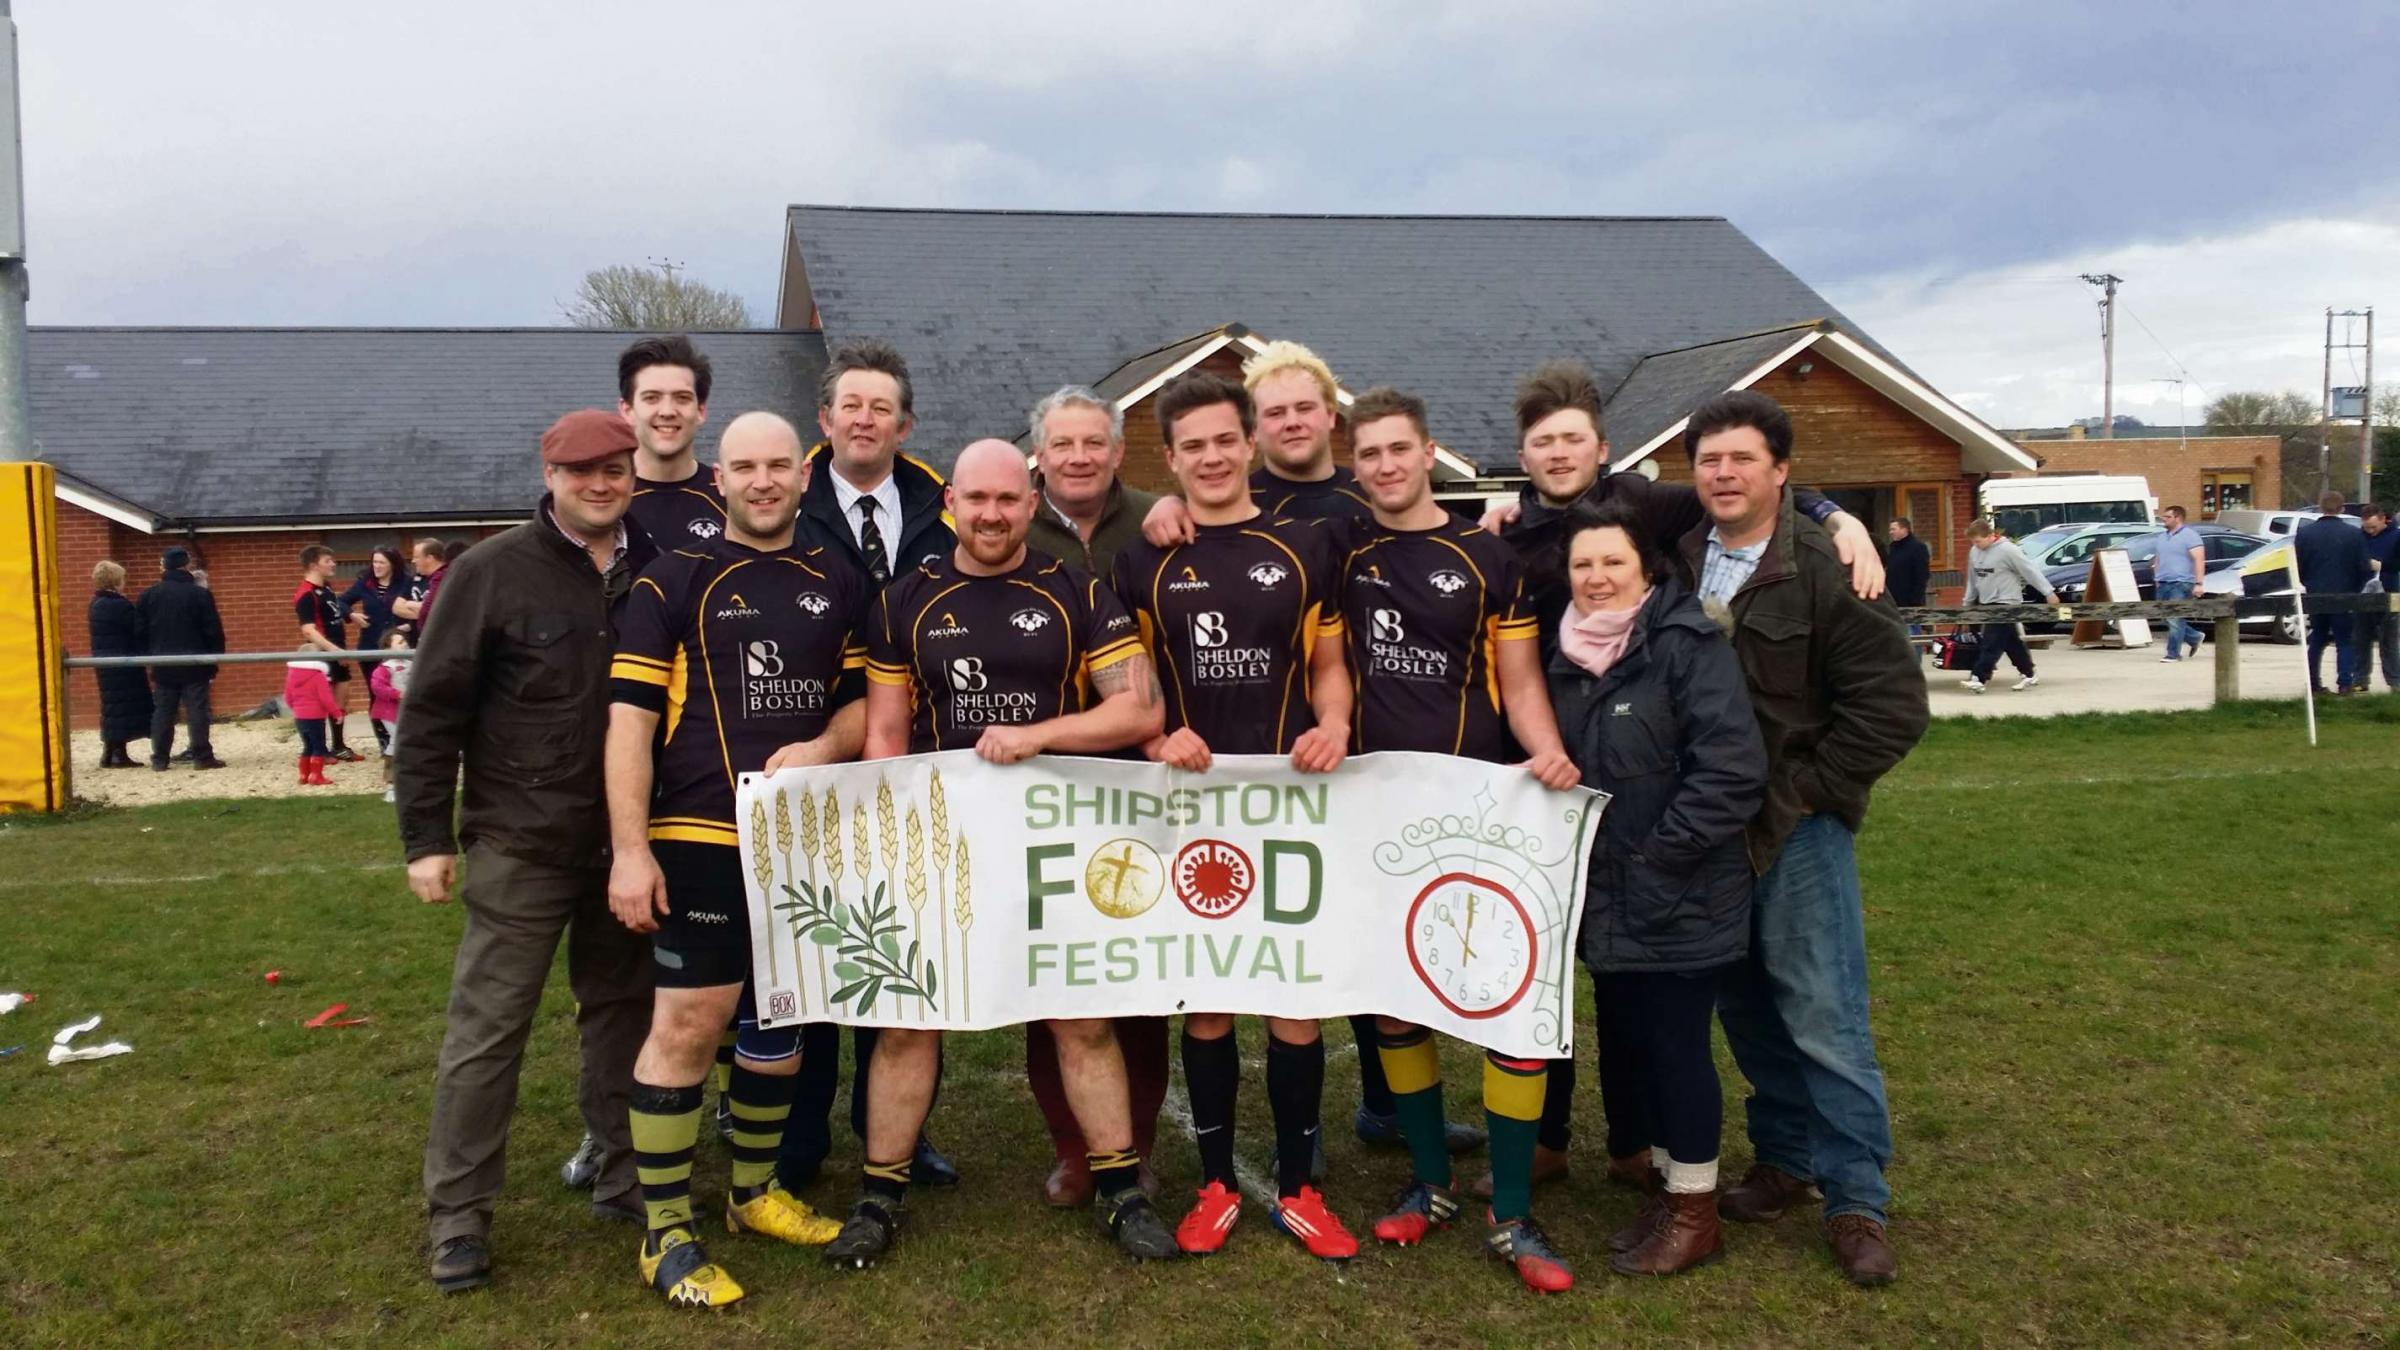 Members of Shipston Rugby Club launch the 2014 Beer Festival